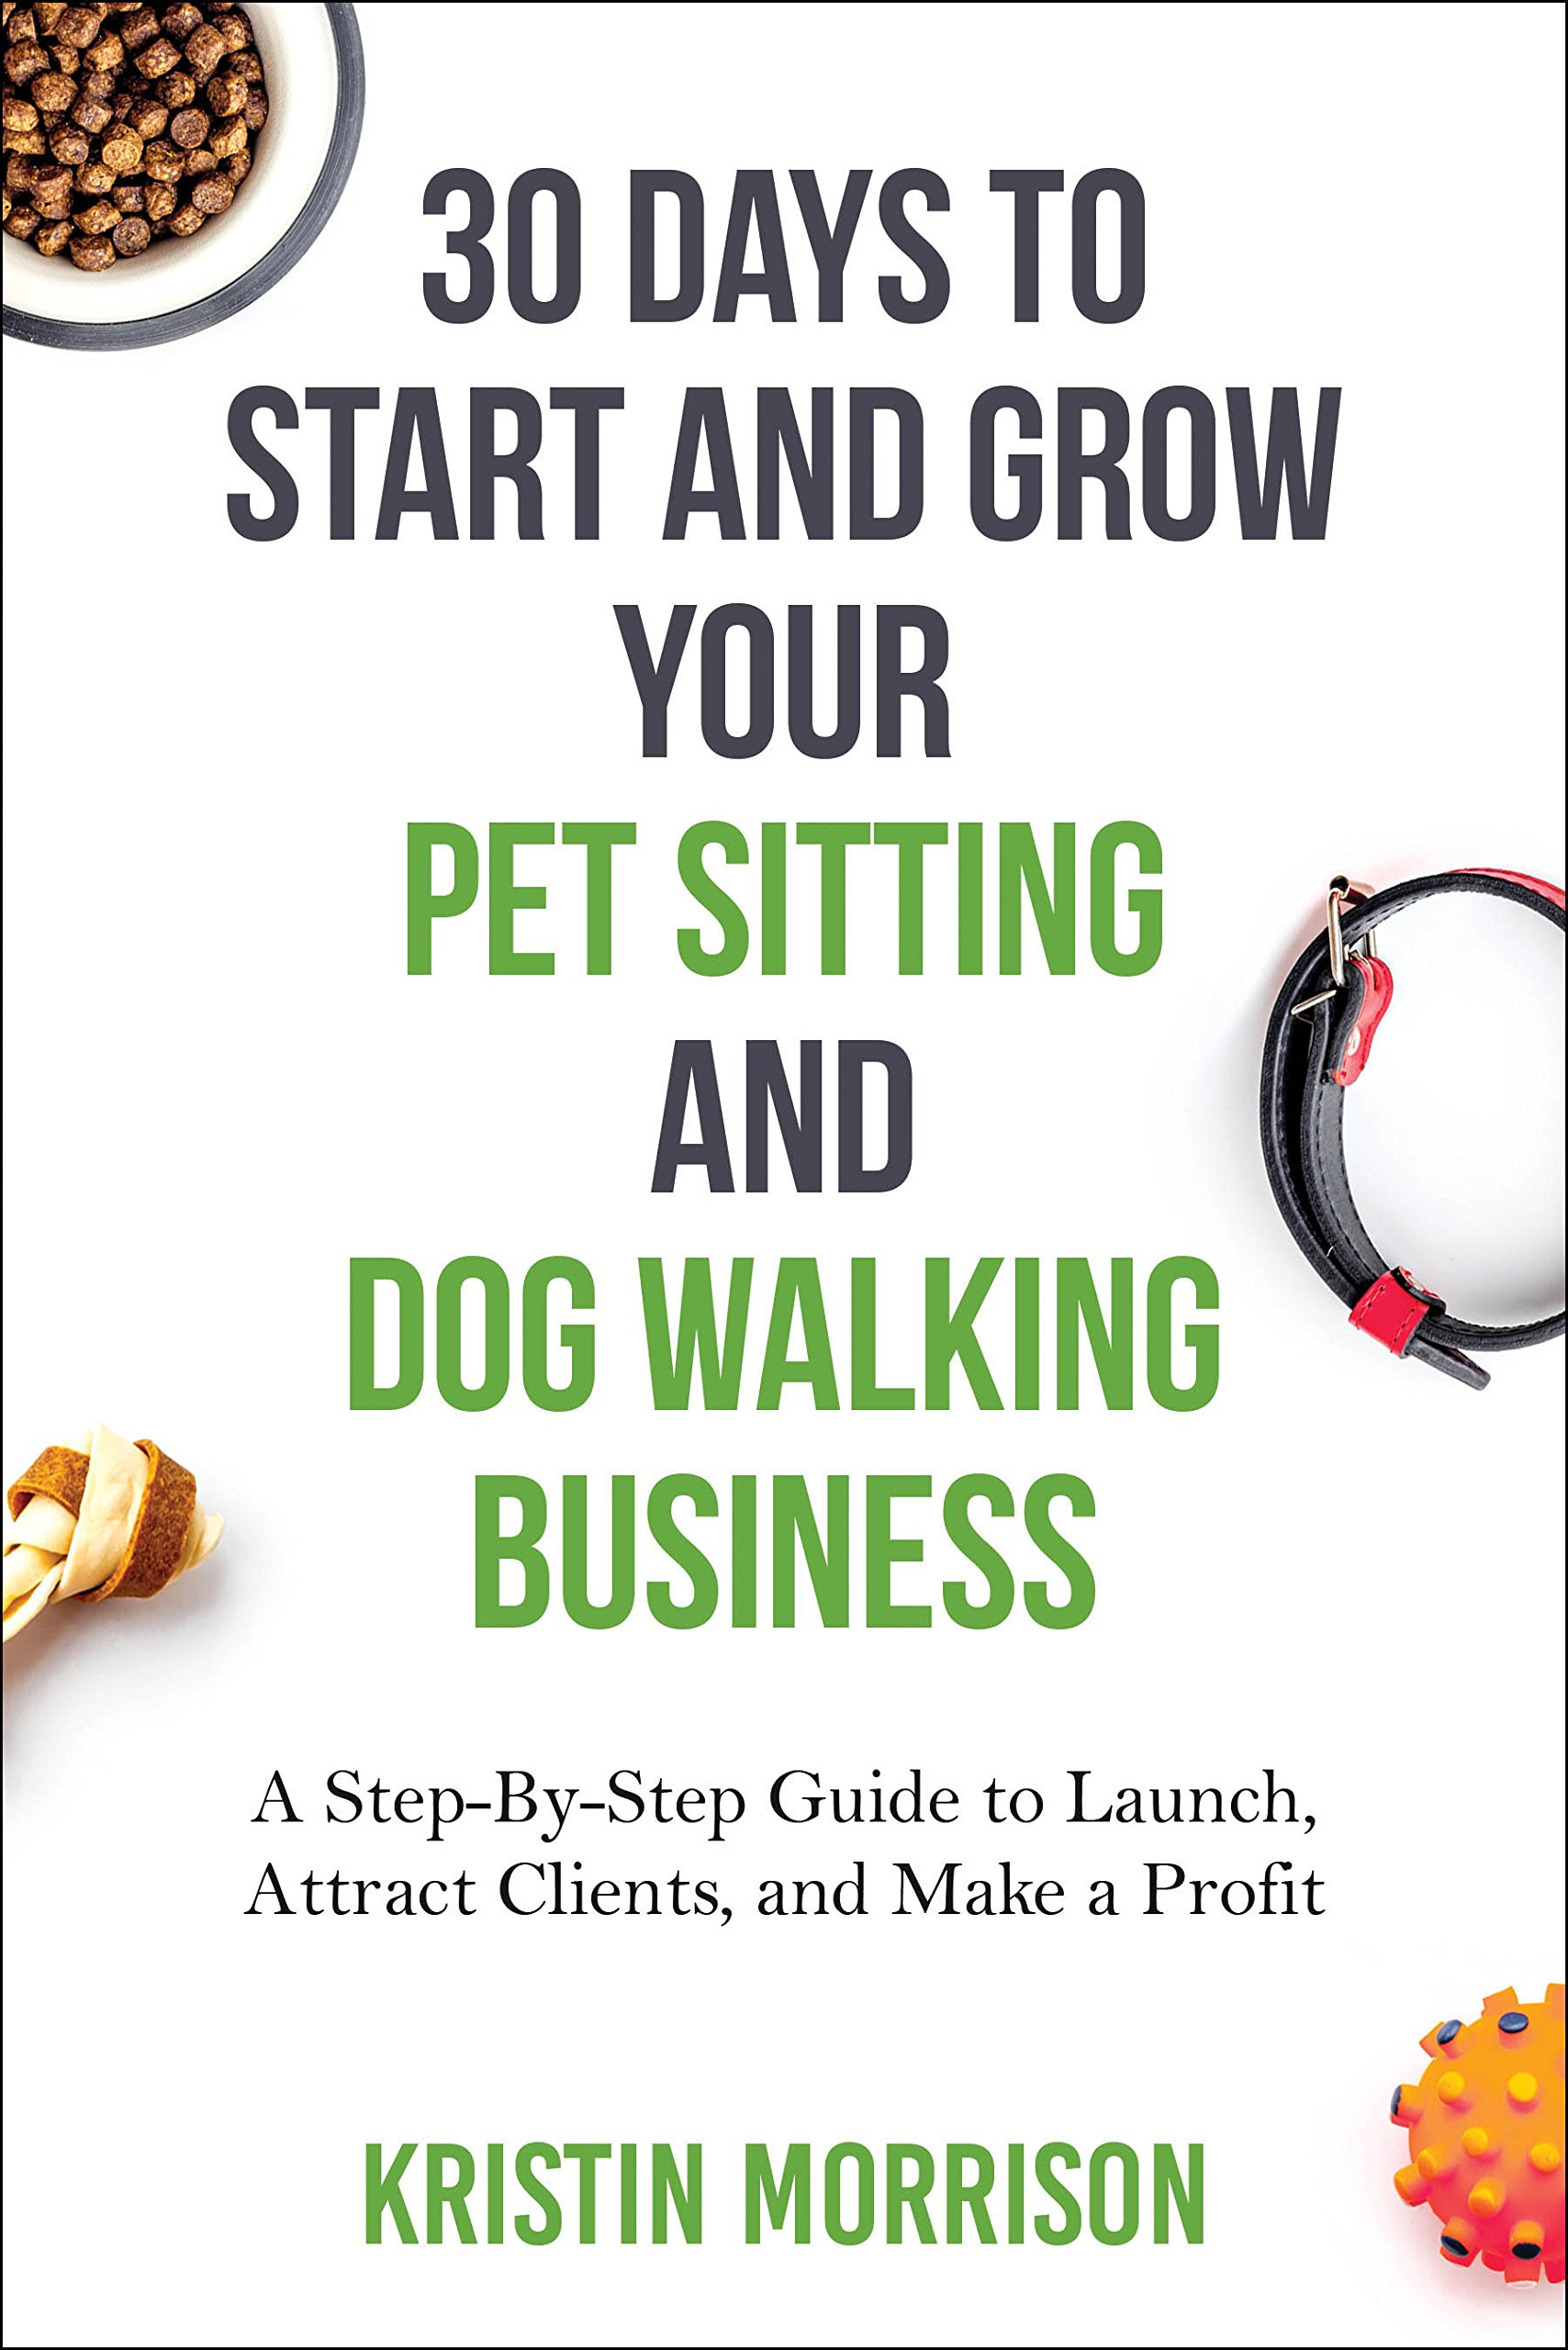 30 Days To Start and Grow Your Pet Sitting and Dog Walking